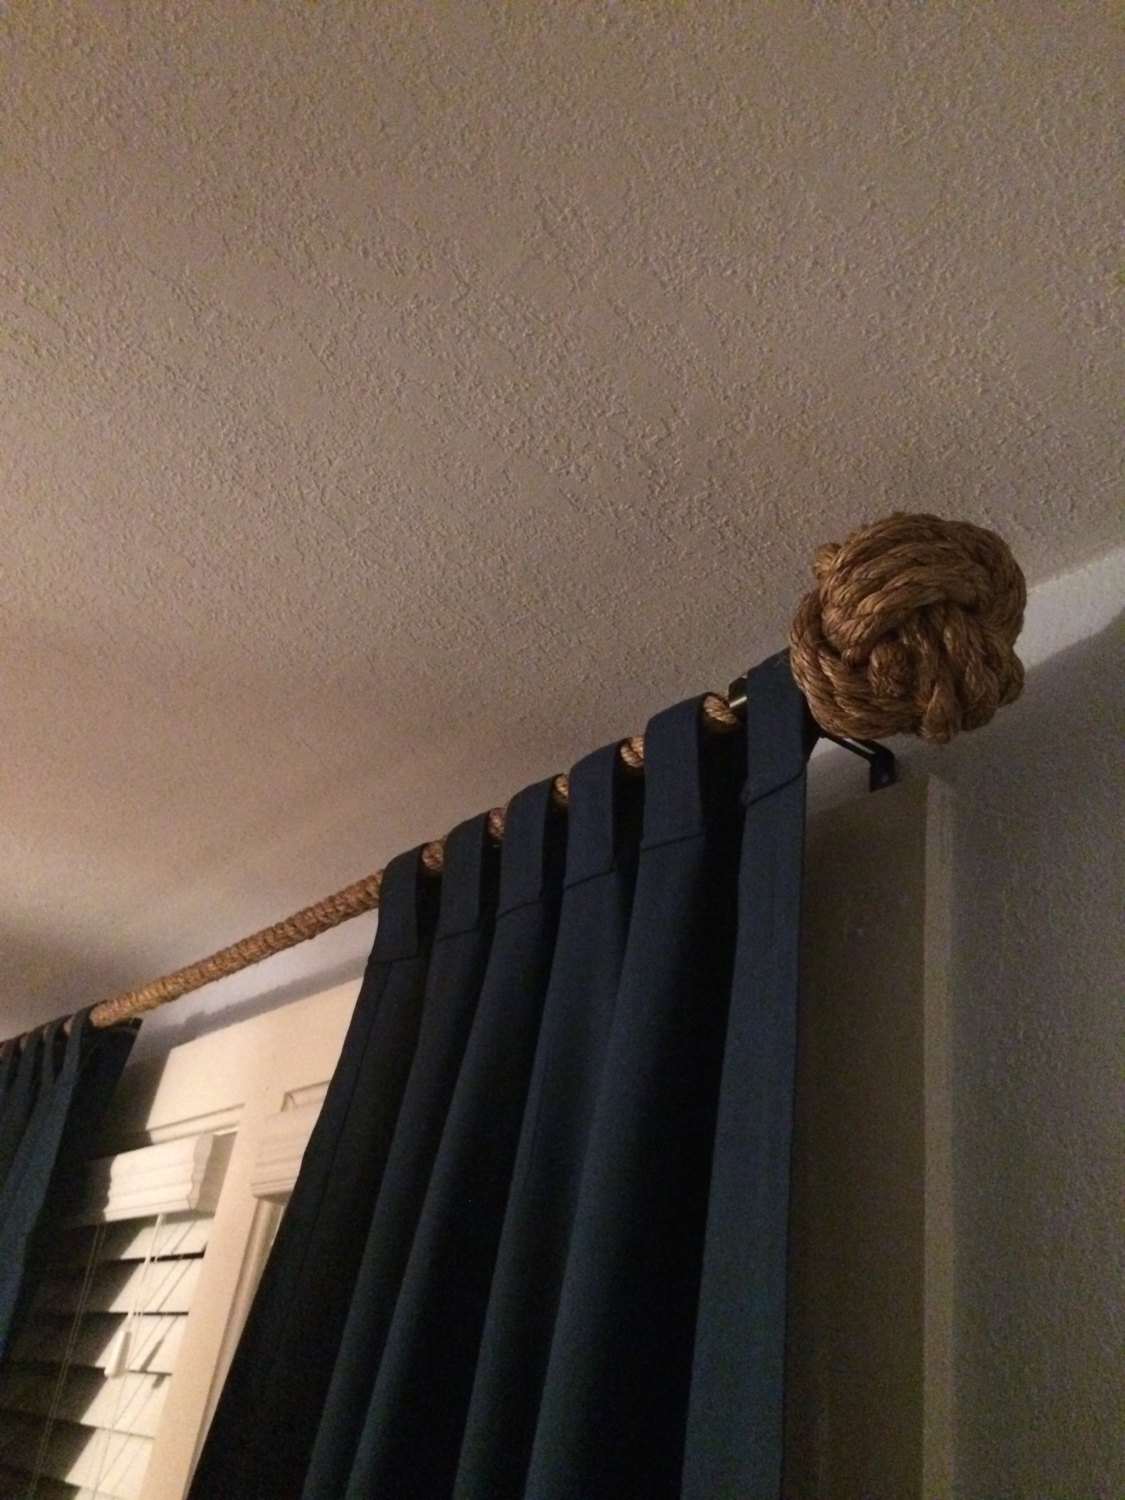 Curtain Rods Nautical Curtain Rods Inspiring Pictures Of With Regard To Nautical Curtain Rods (Image 11 of 25)